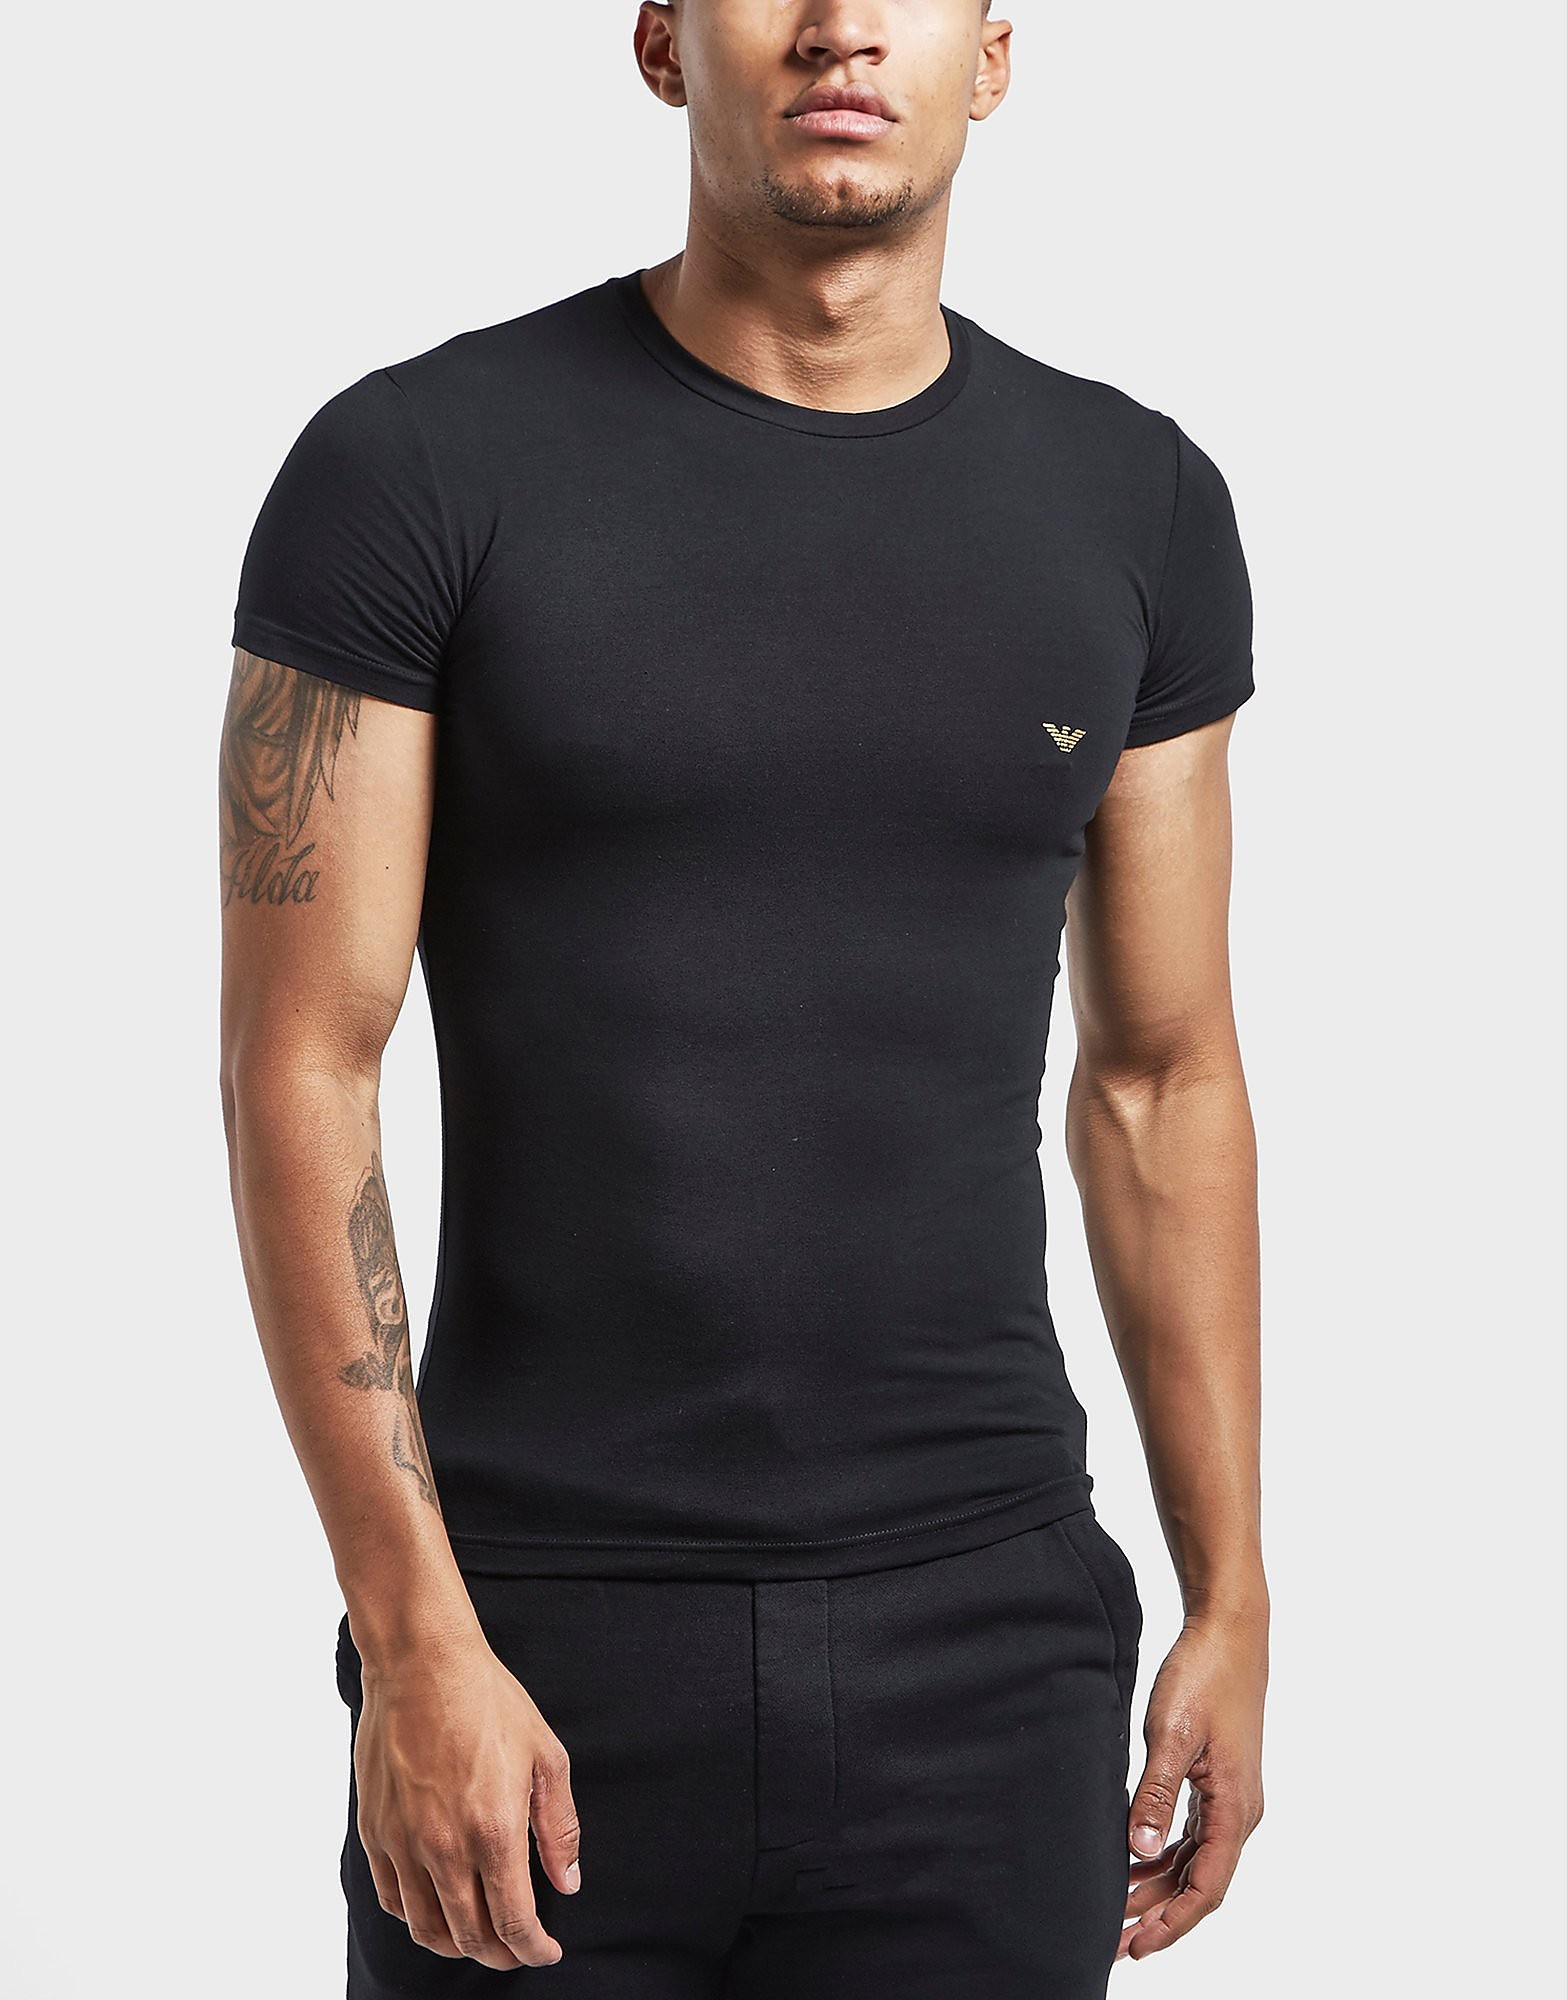 Emporio Armani Metal Eagle Short Sleeve T-Shirt